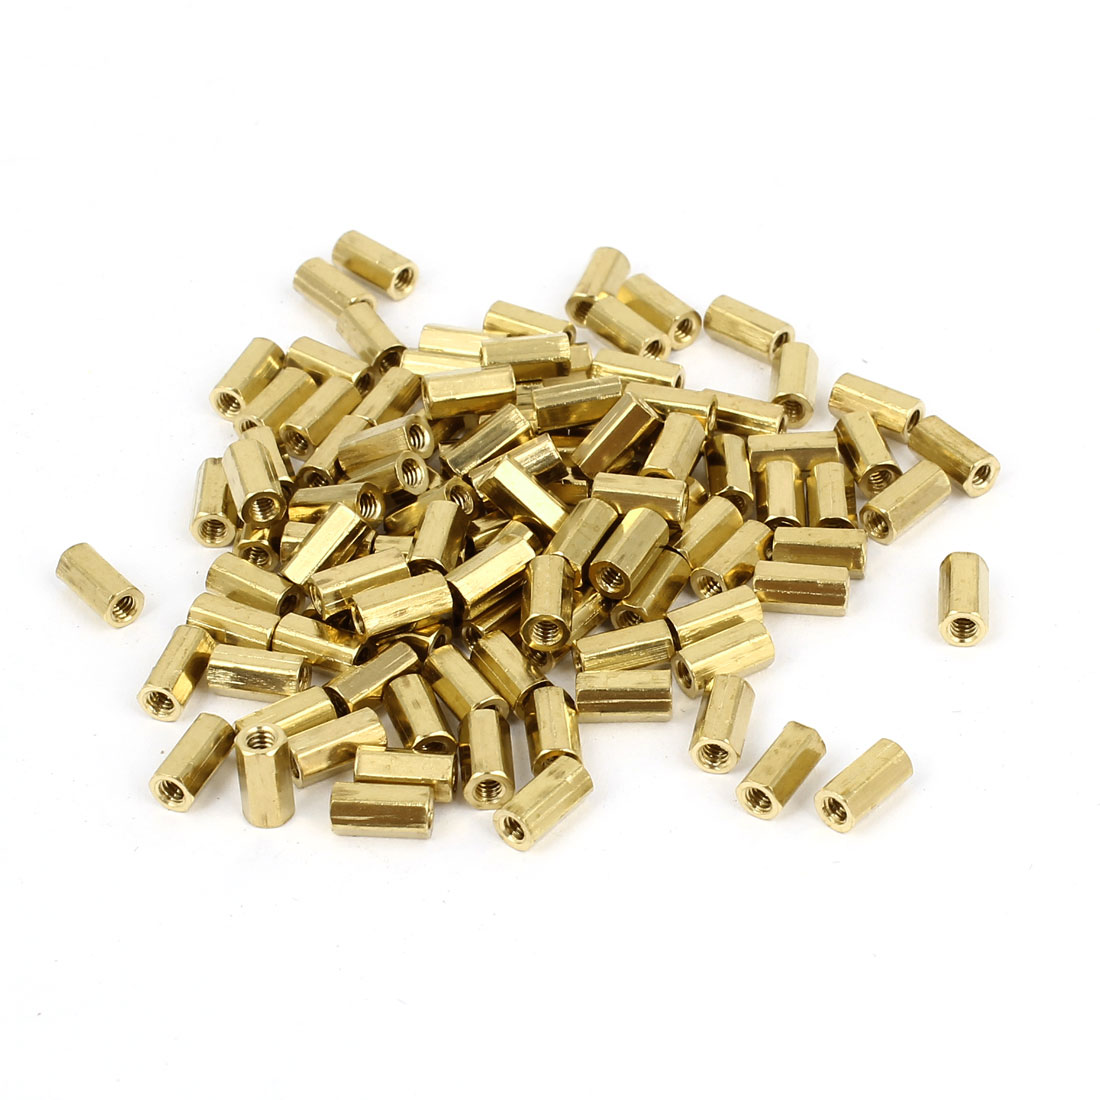 100 Pcs M2 6mm Hexagonal Net Nut Female Brass Standoff Spacer for CCTV Camera